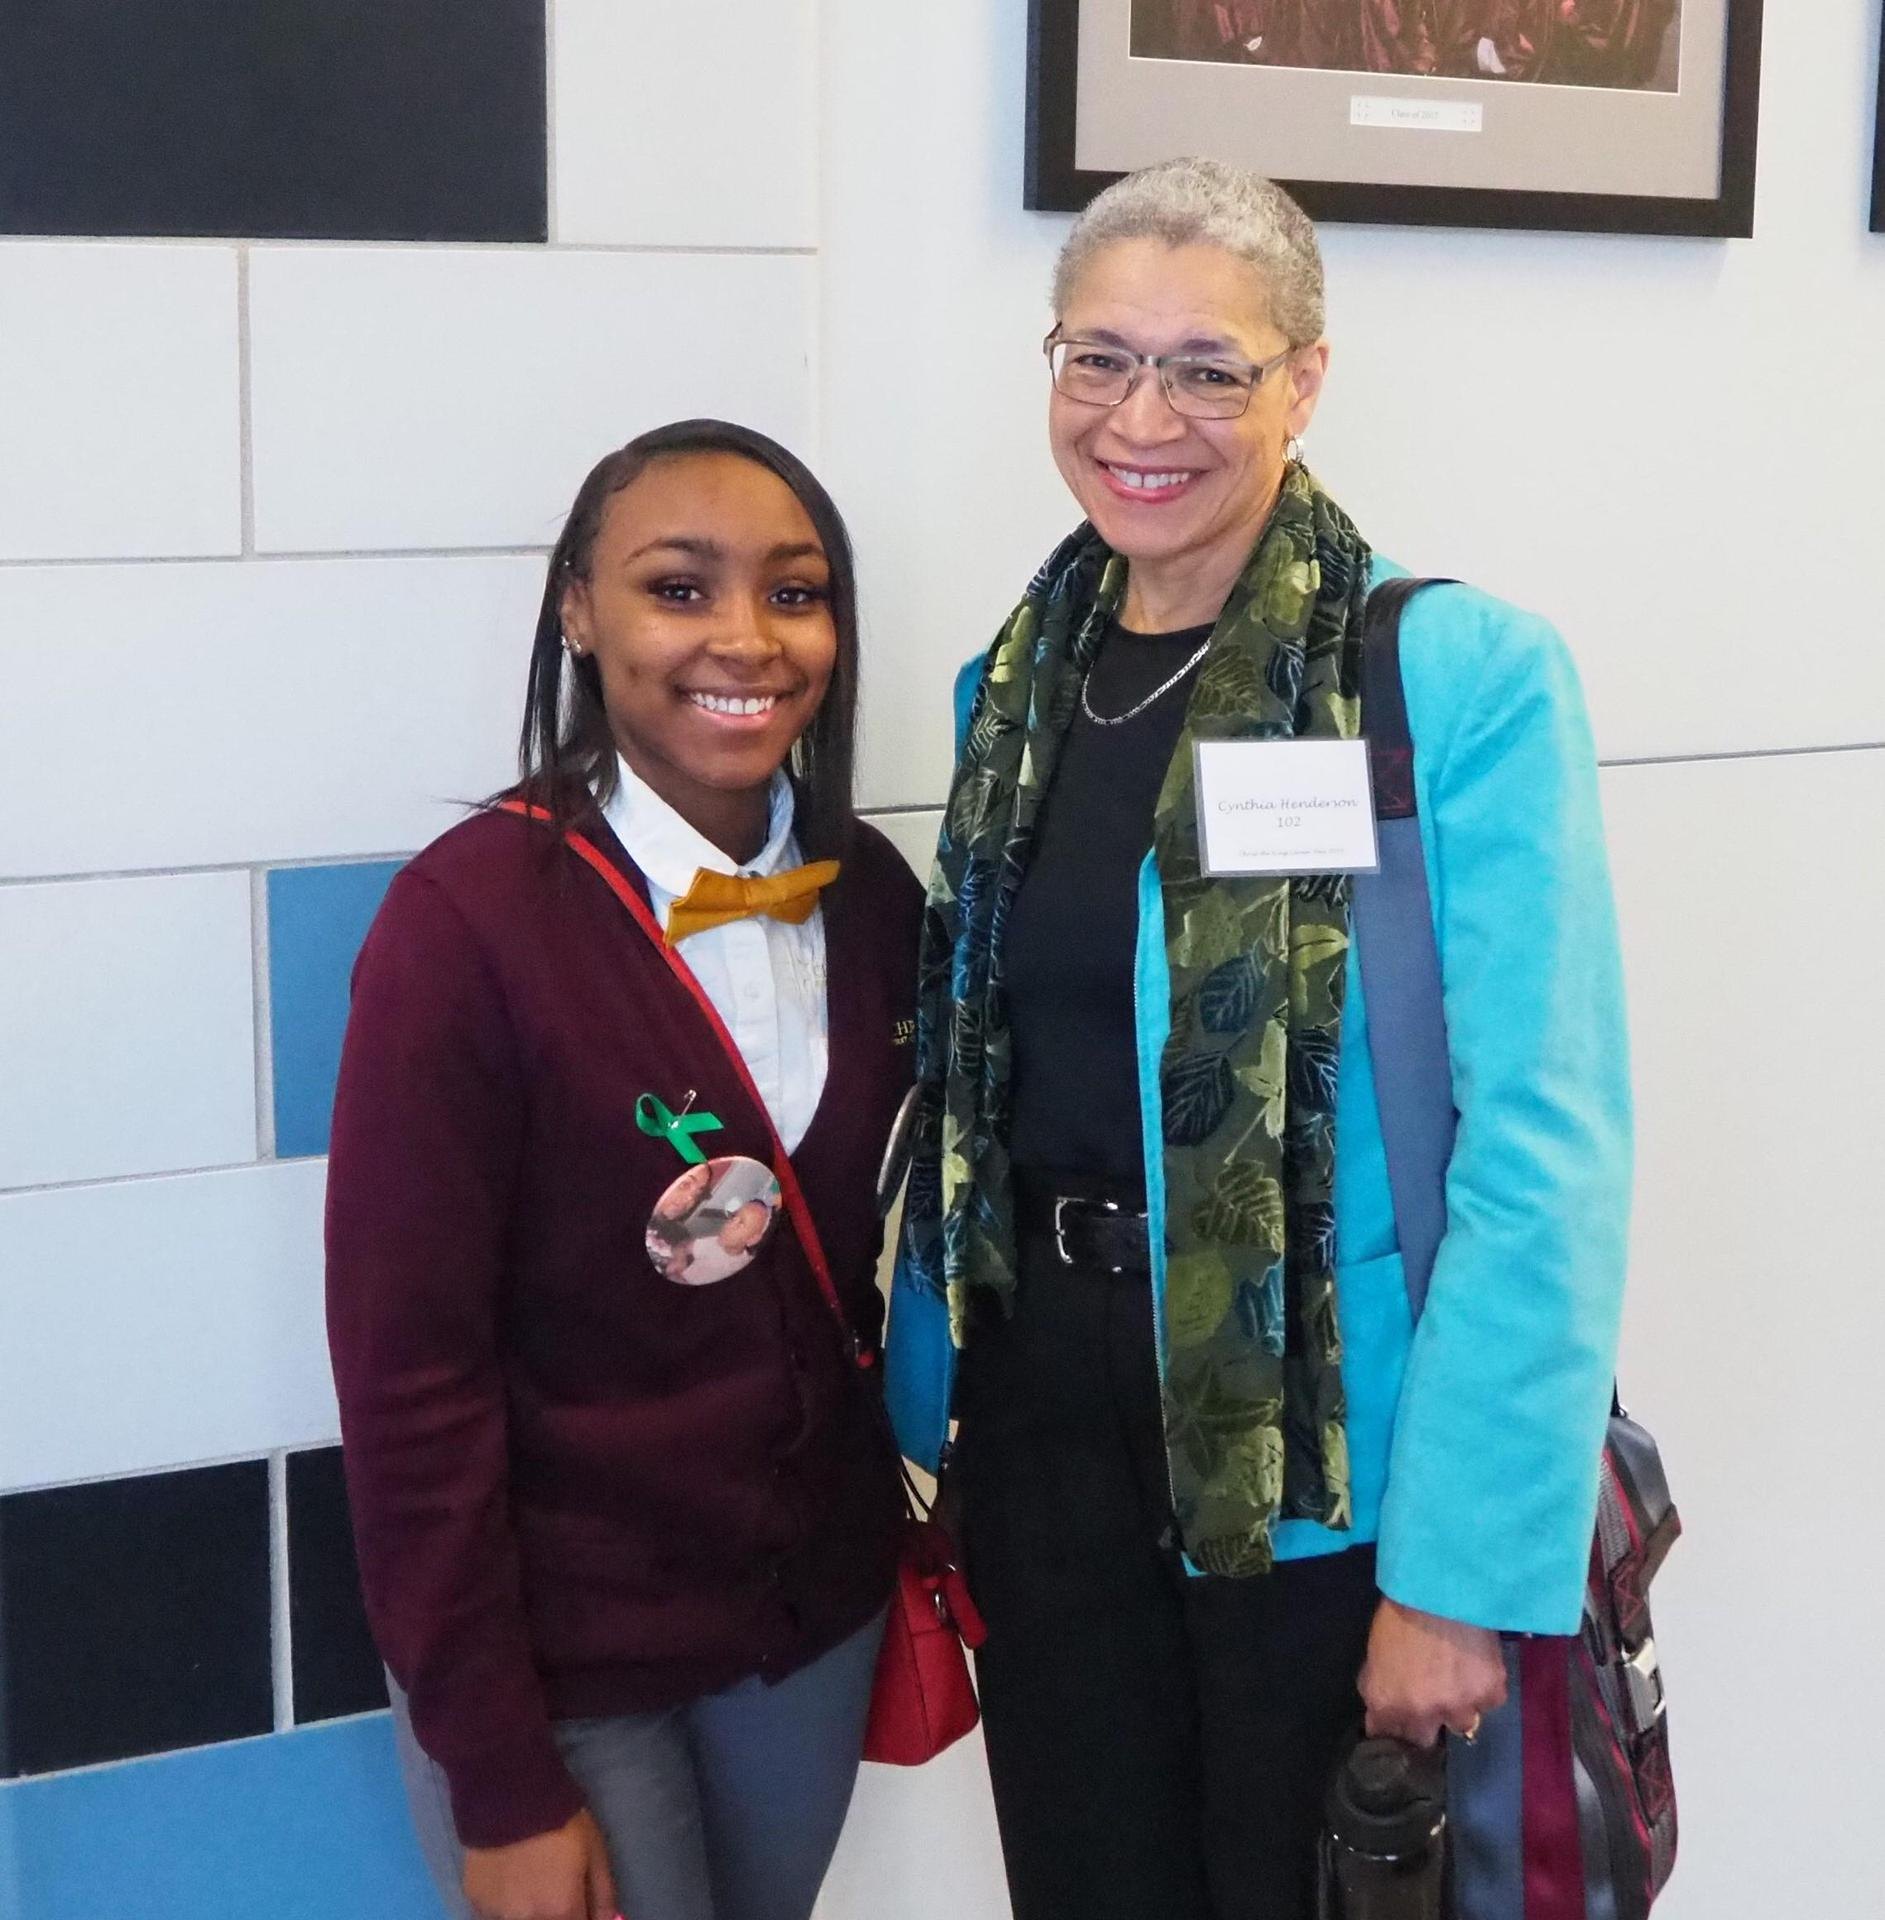 Cynthia Henderson and student